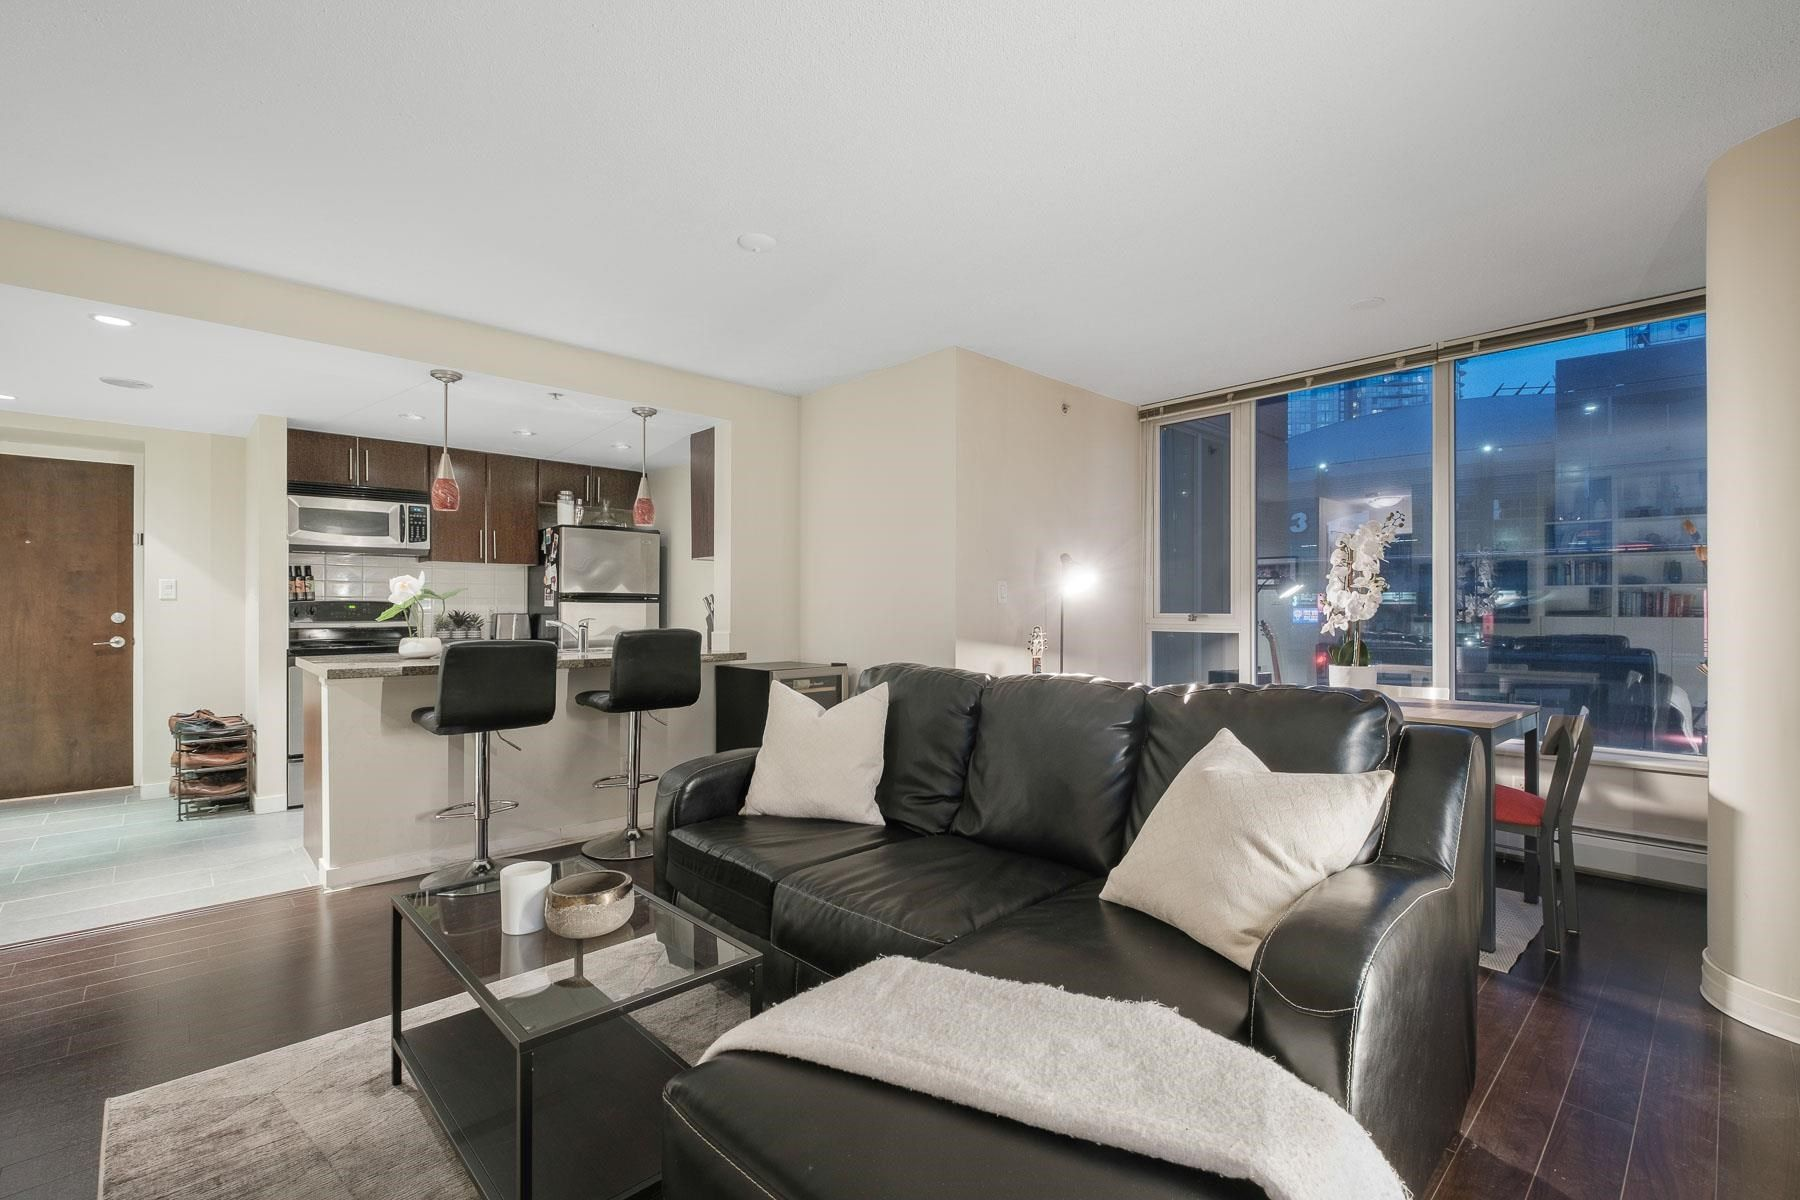 Main Photo: 306 688 ABBOTT STREET in Vancouver: Downtown VW Condo for sale (Vancouver West)  : MLS®# R2602237